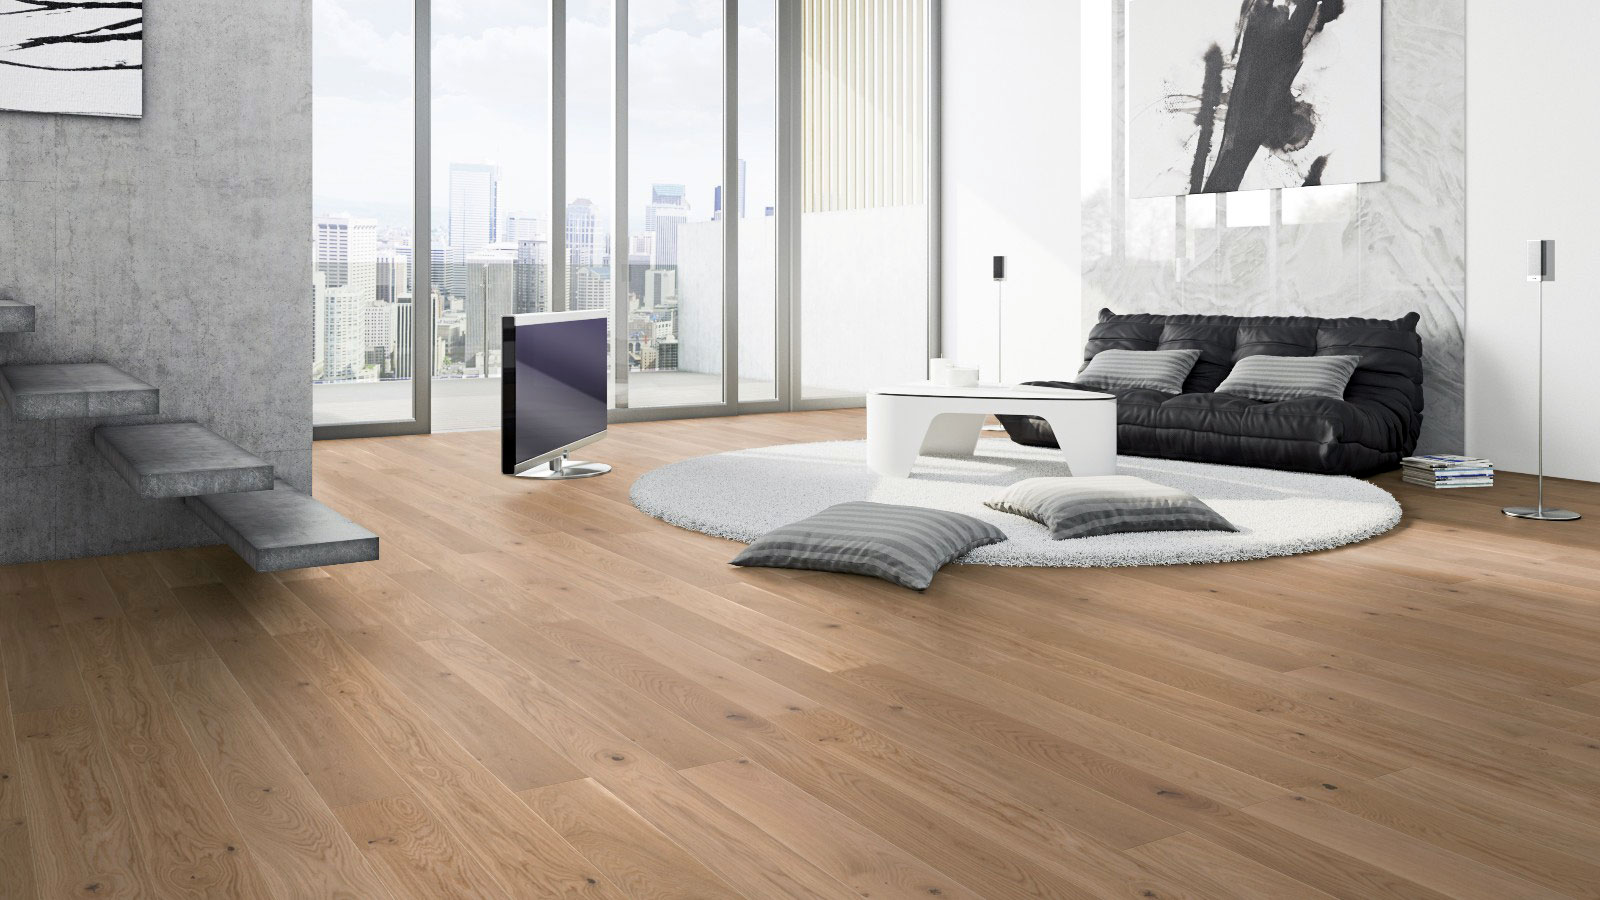 eurohaus european hardwood flooring vancouver german made floors. Black Bedroom Furniture Sets. Home Design Ideas